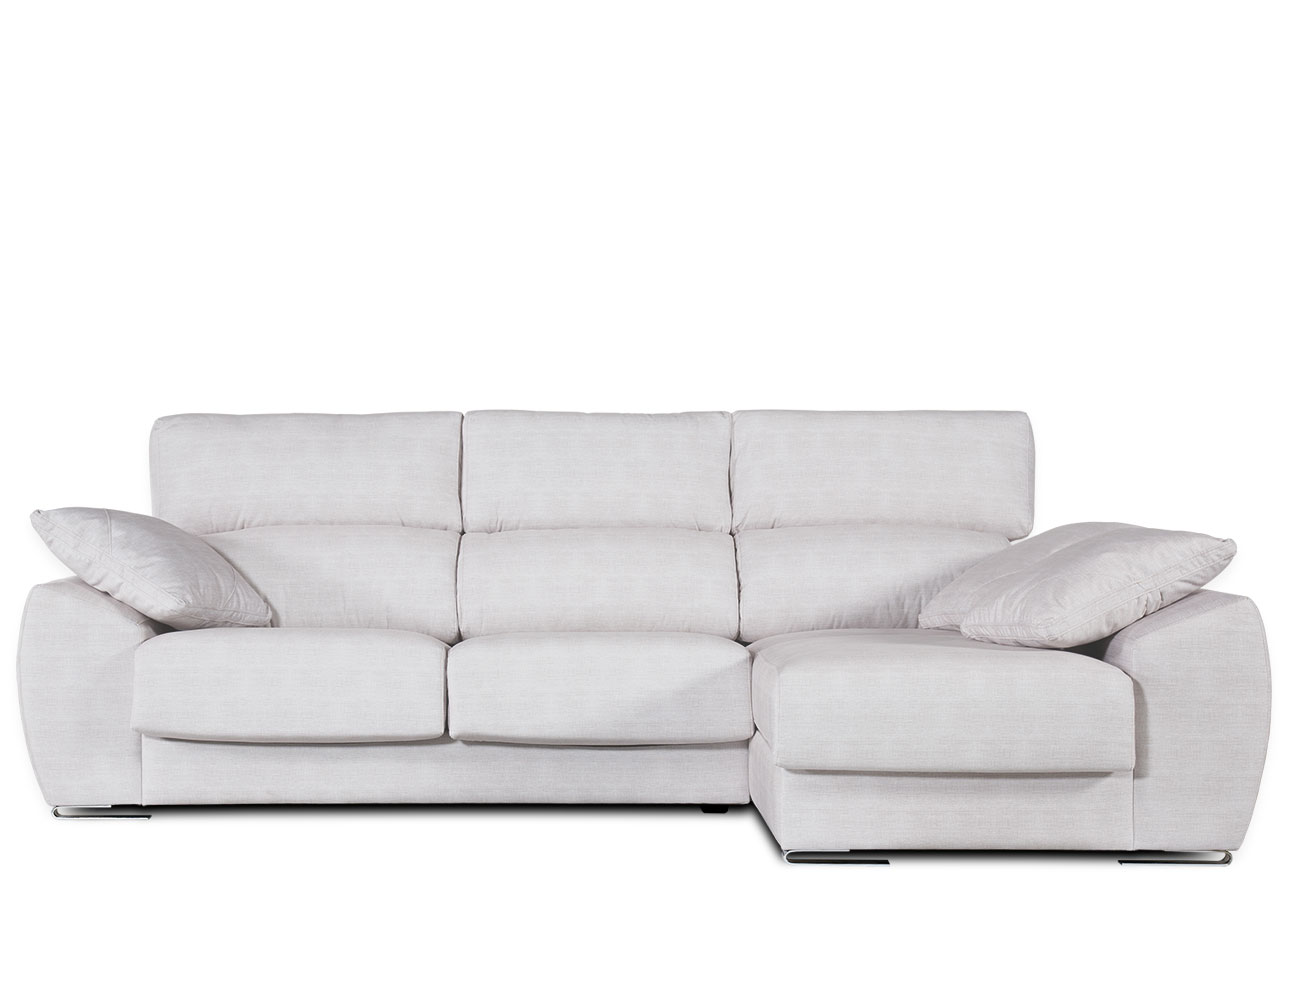 Sof 3 plazas cheiselonguen relax electrico con dise o for Sofa 1 plaza chaise longue